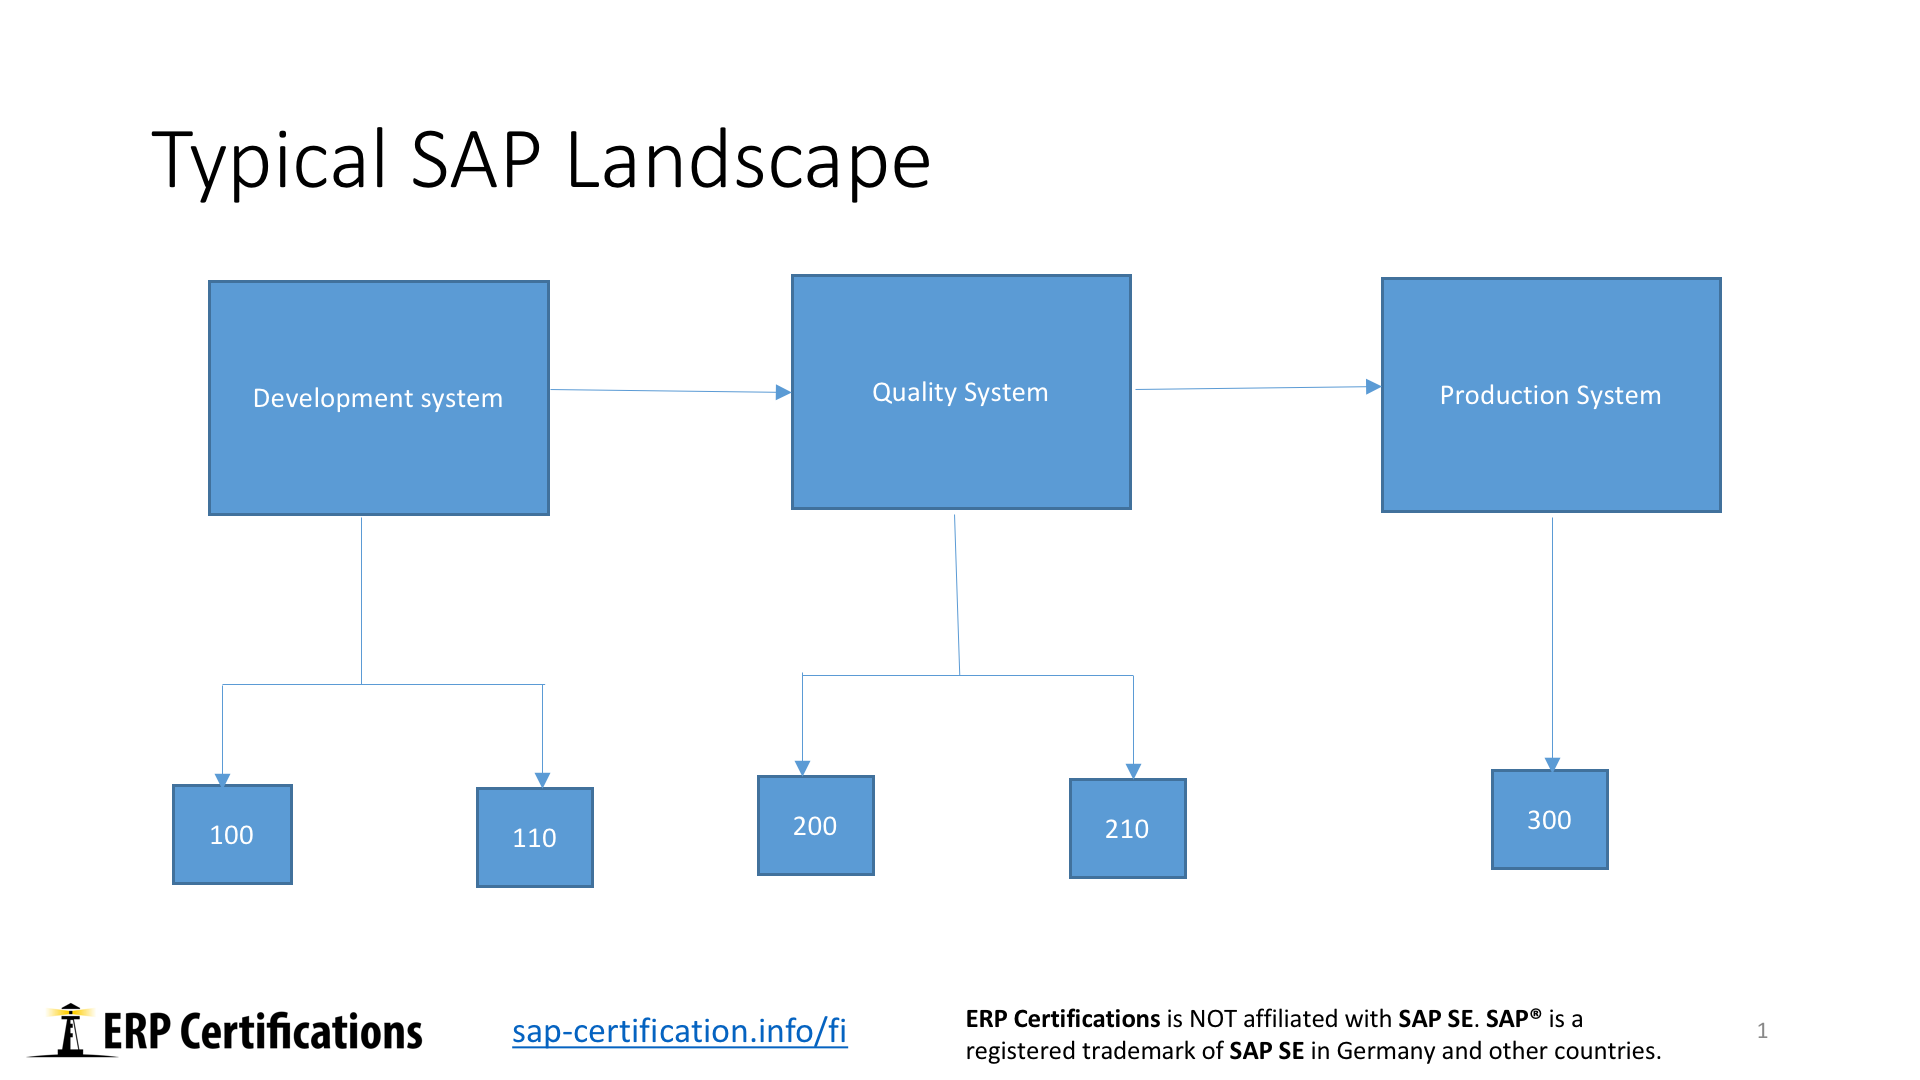 sap fi organizational structure free sap fi training SAP Tables Diagram SAP Landscape